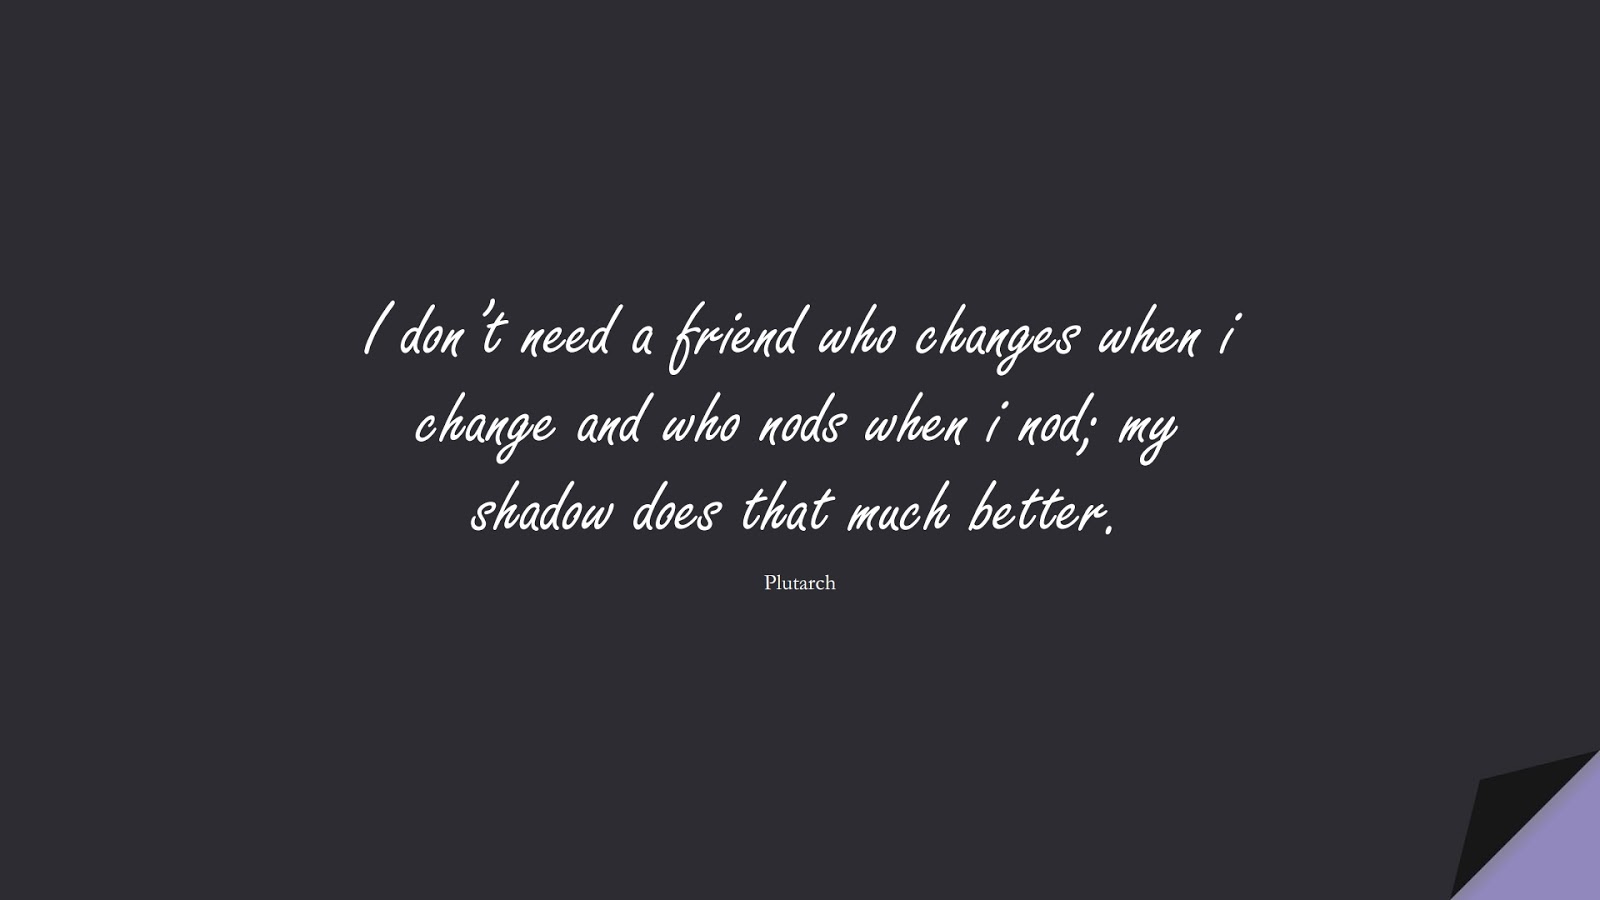 I don't need a friend who changes when i change and who nods when i nod; my shadow does that much better. (Plutarch);  #FriendshipQuotes